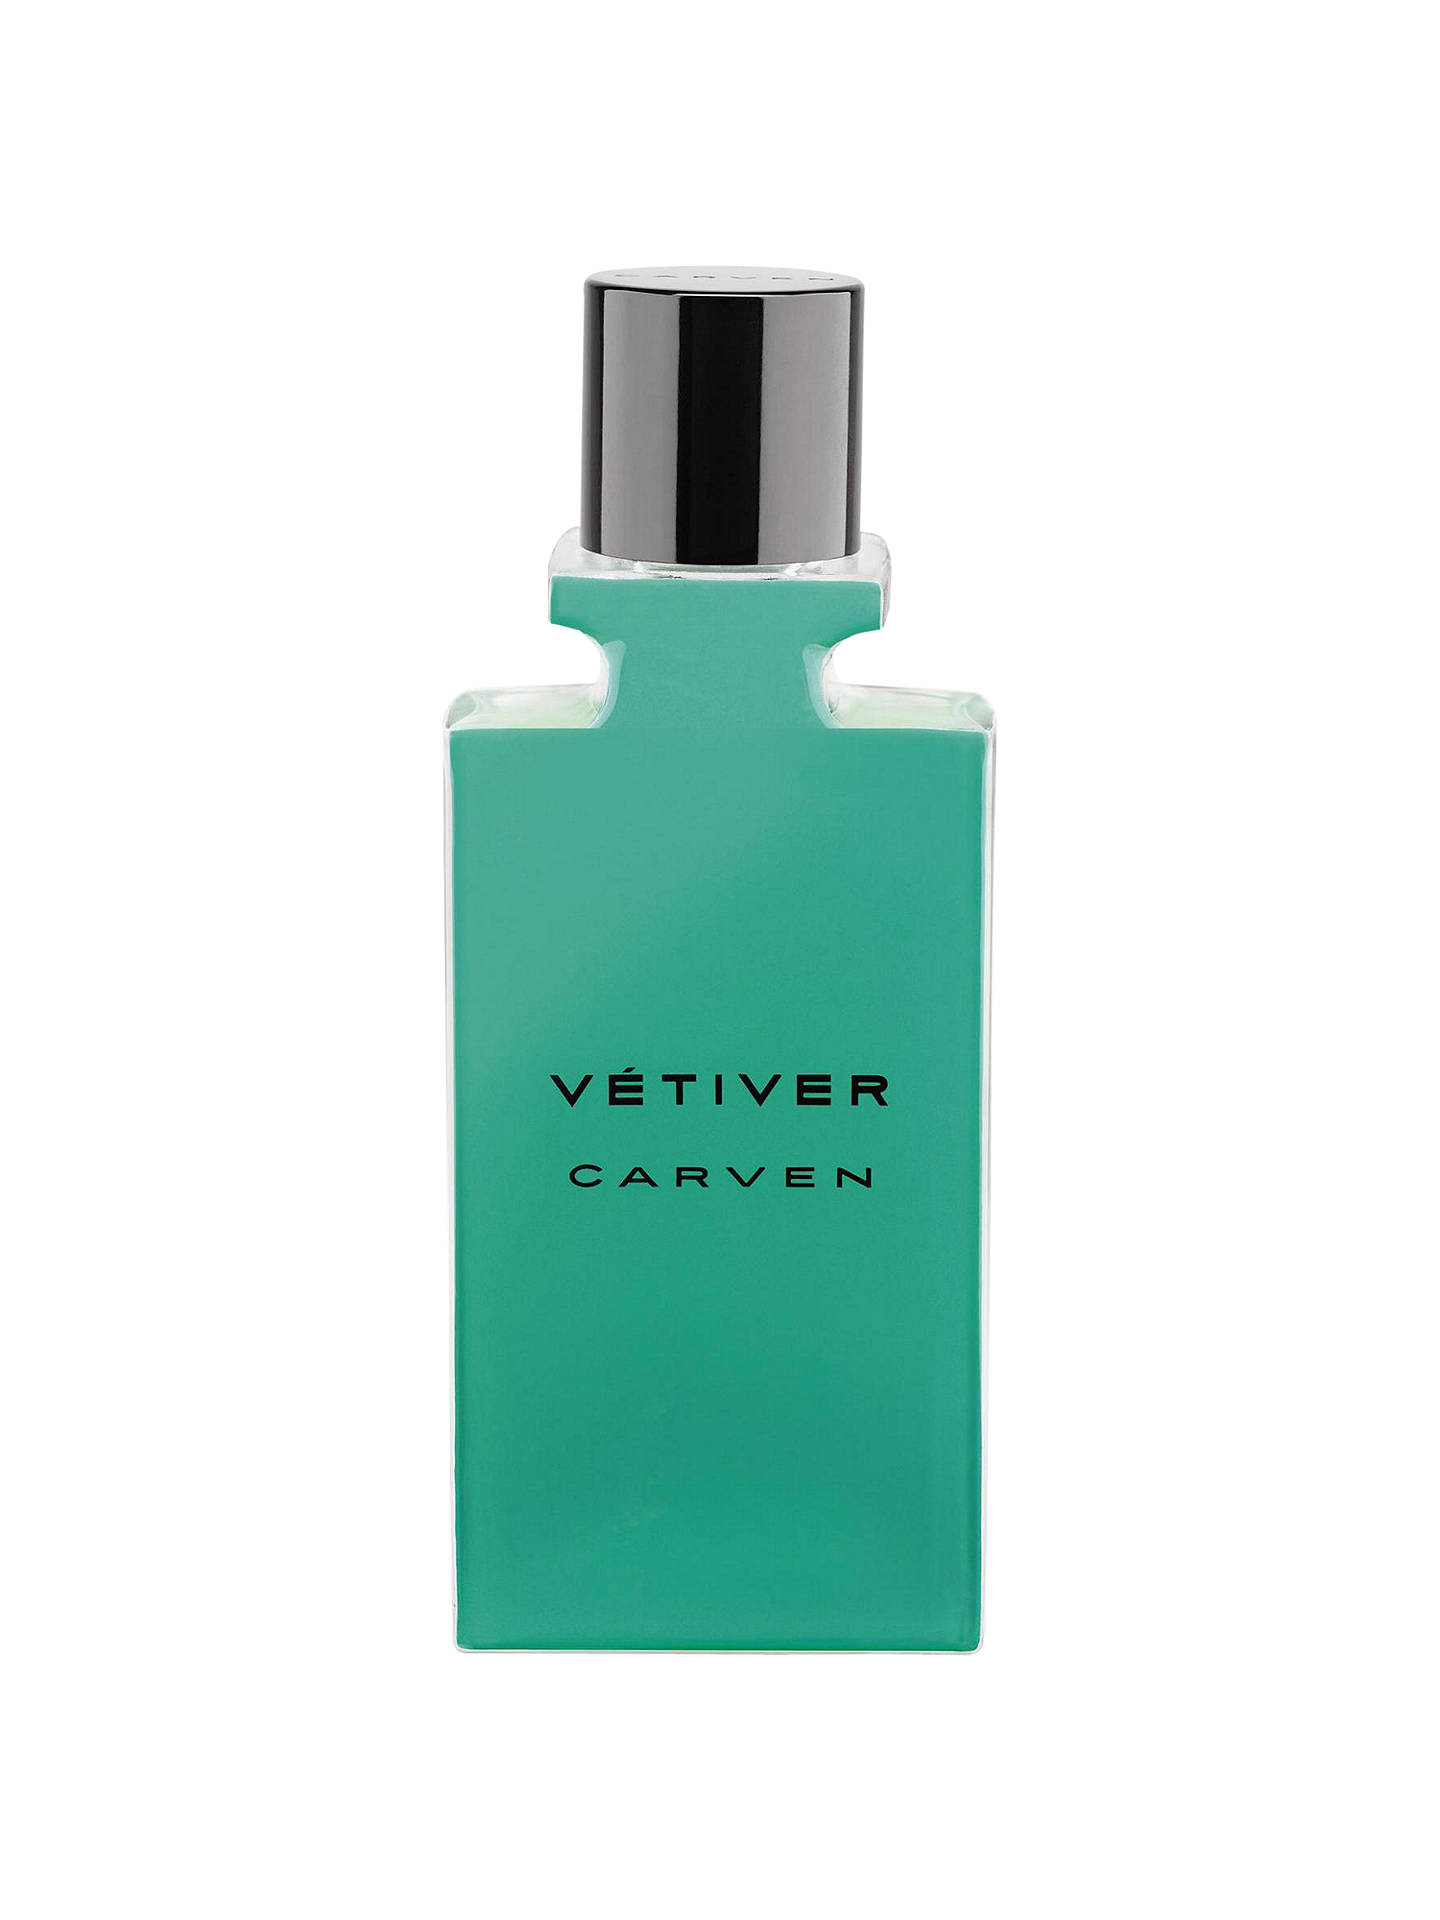 Buy Carven Vétiver Eau de Toilette, 50ml Online at johnlewis.com